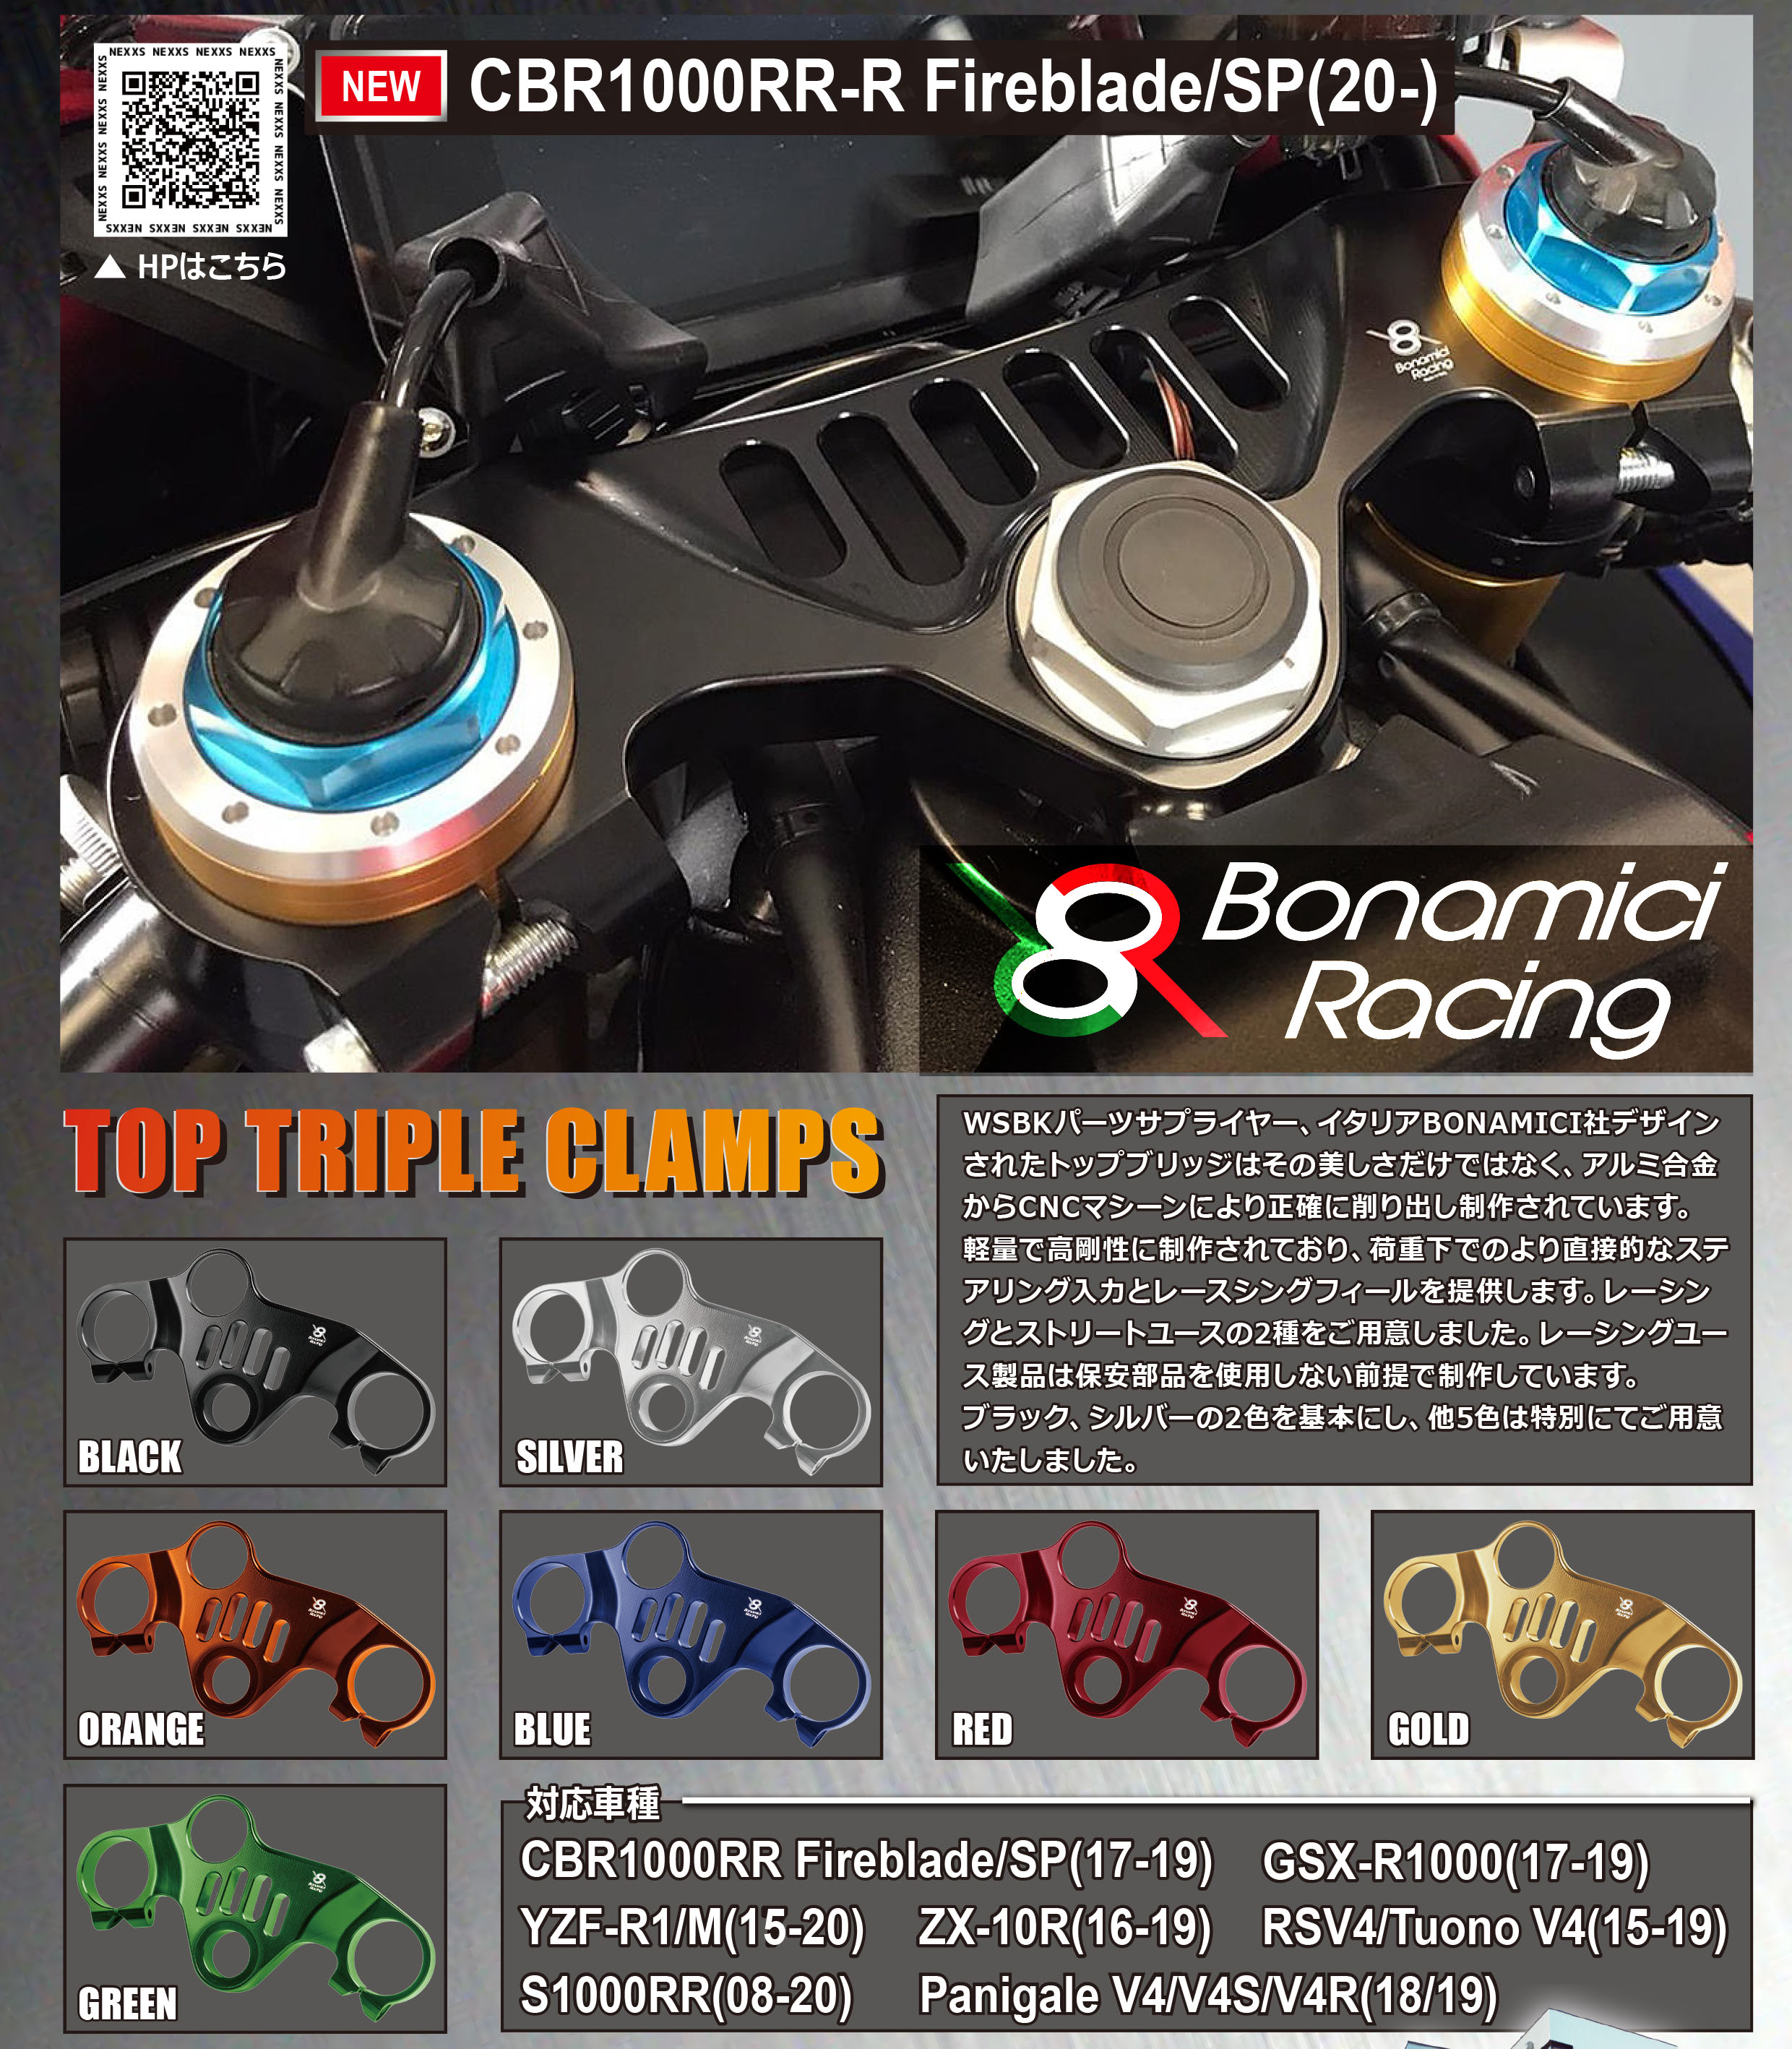 ネクサス「Bonamici Racing TOP TRIPLE CLAMPS」記事01